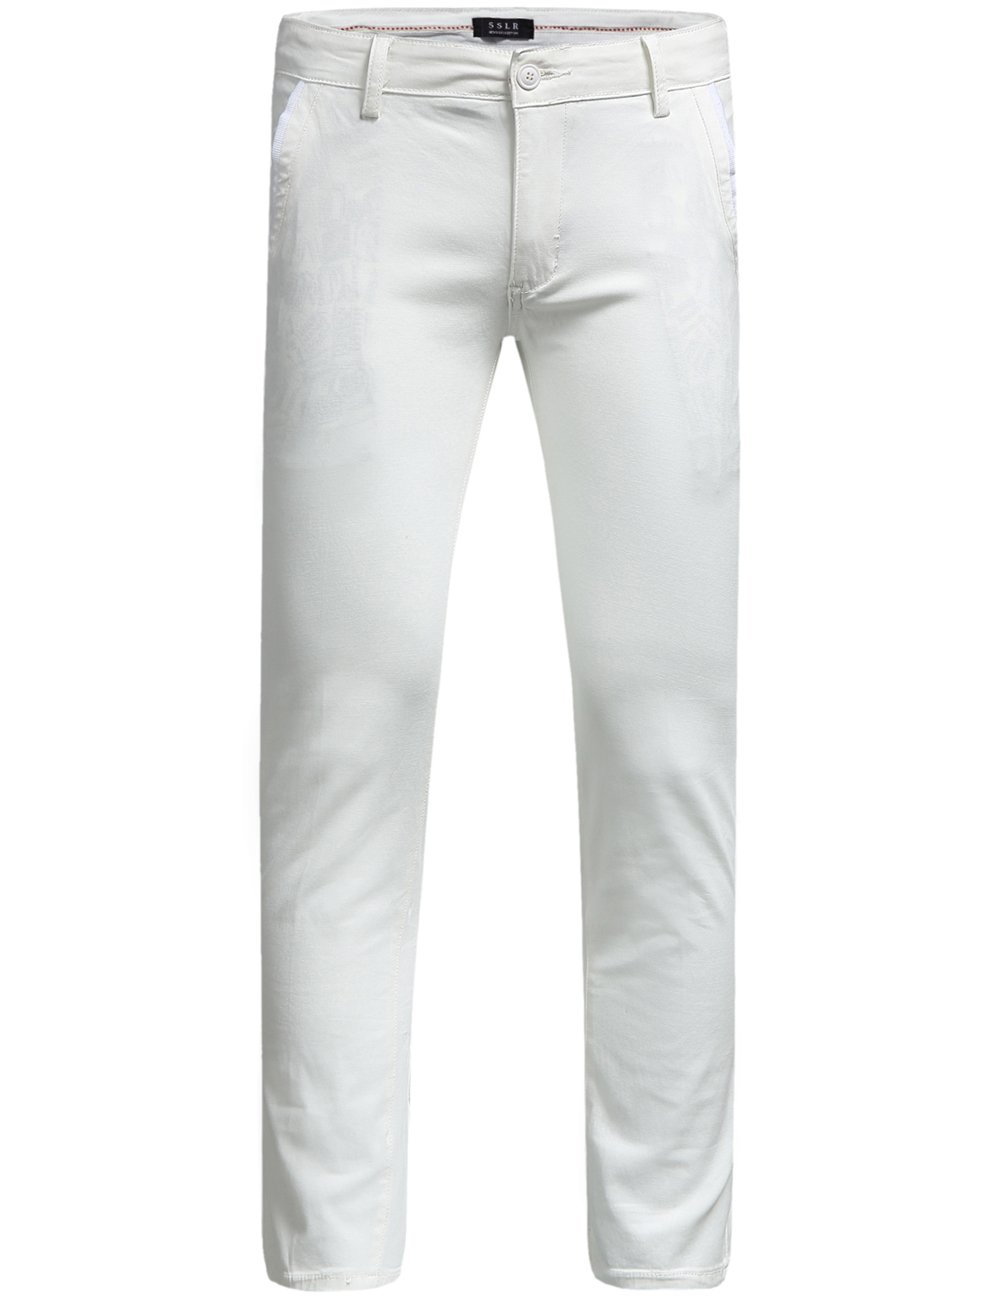 SSLR Men's Hybrid Stretch Casual Slim Fit Pants (W36 x L34, White)